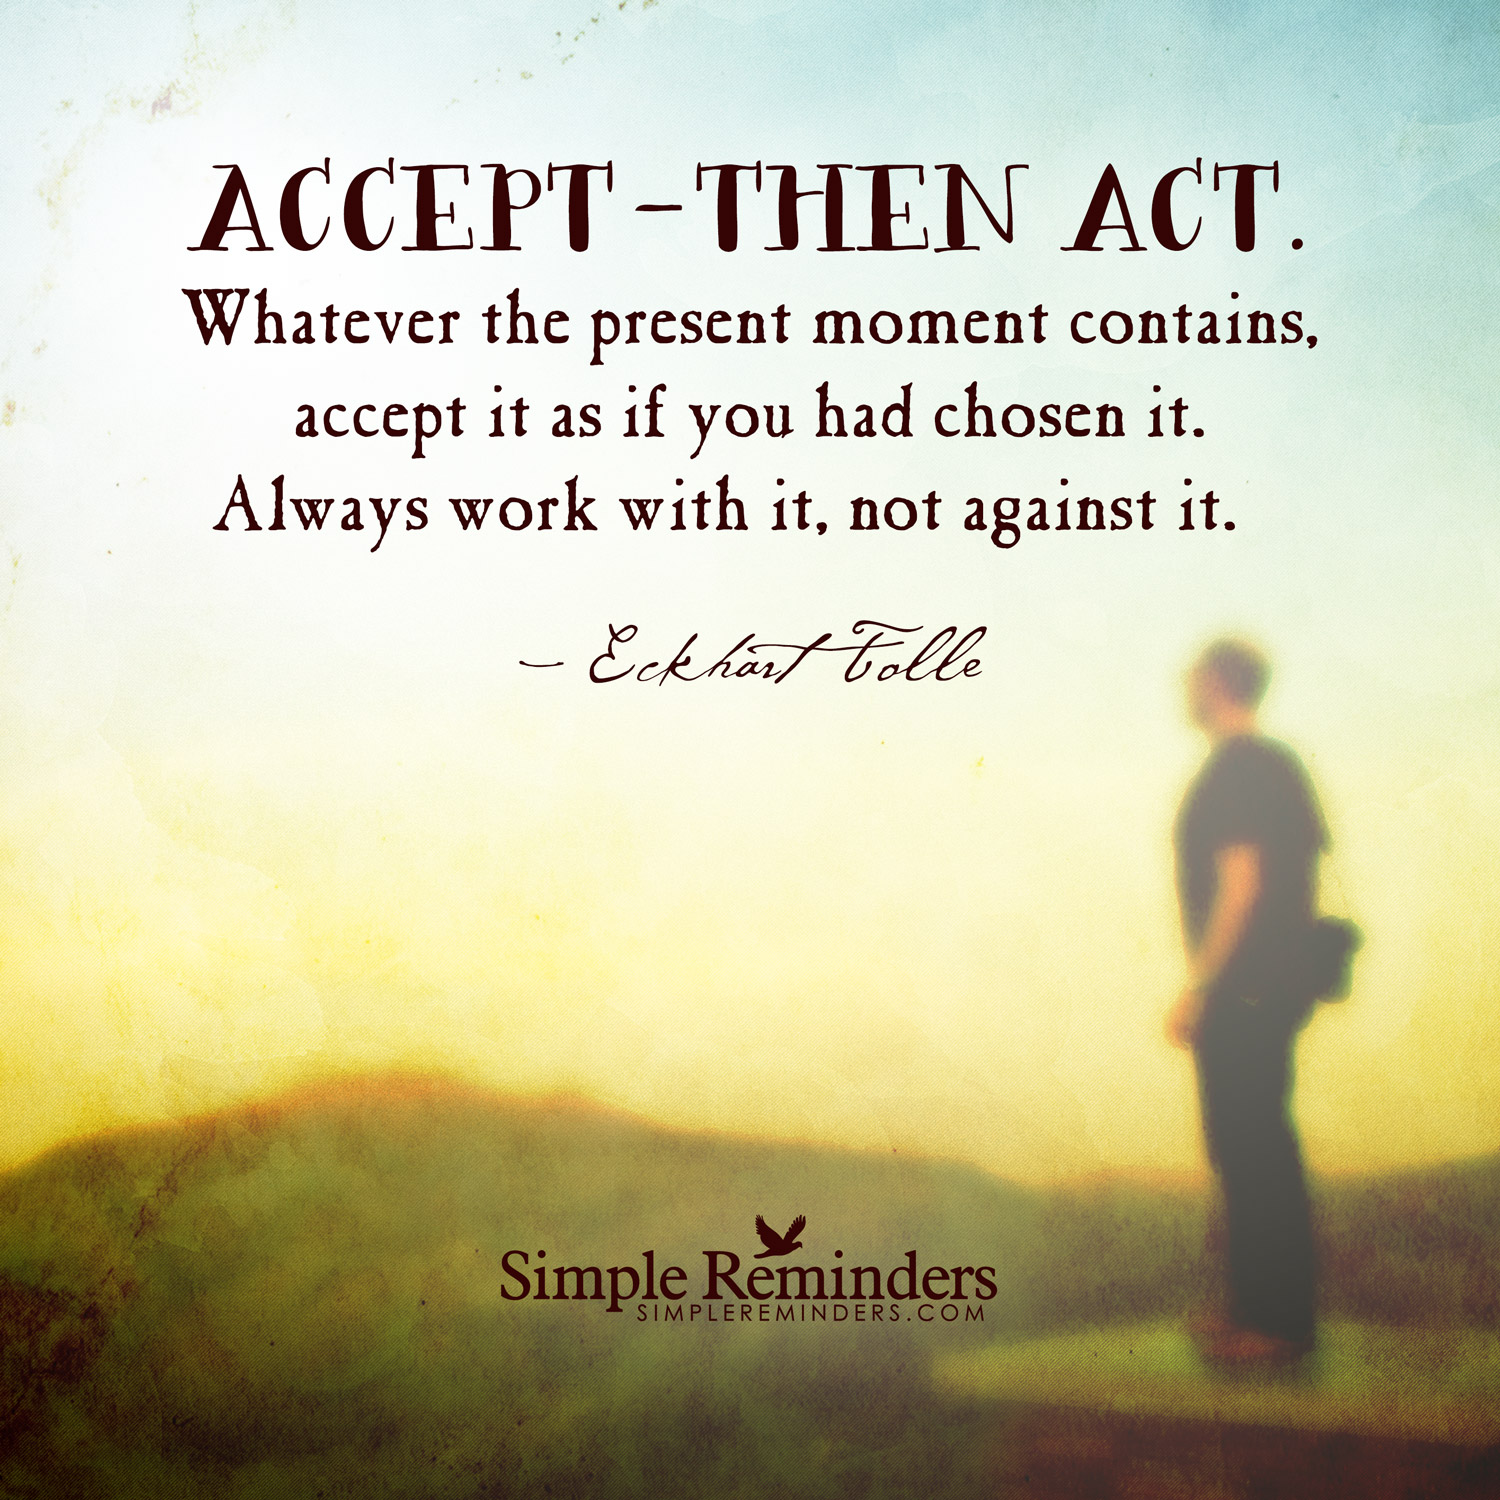 Whatever the present moment contains, accept it as if you had chosen it. Always work with it, not against it. Eckhart Tolle